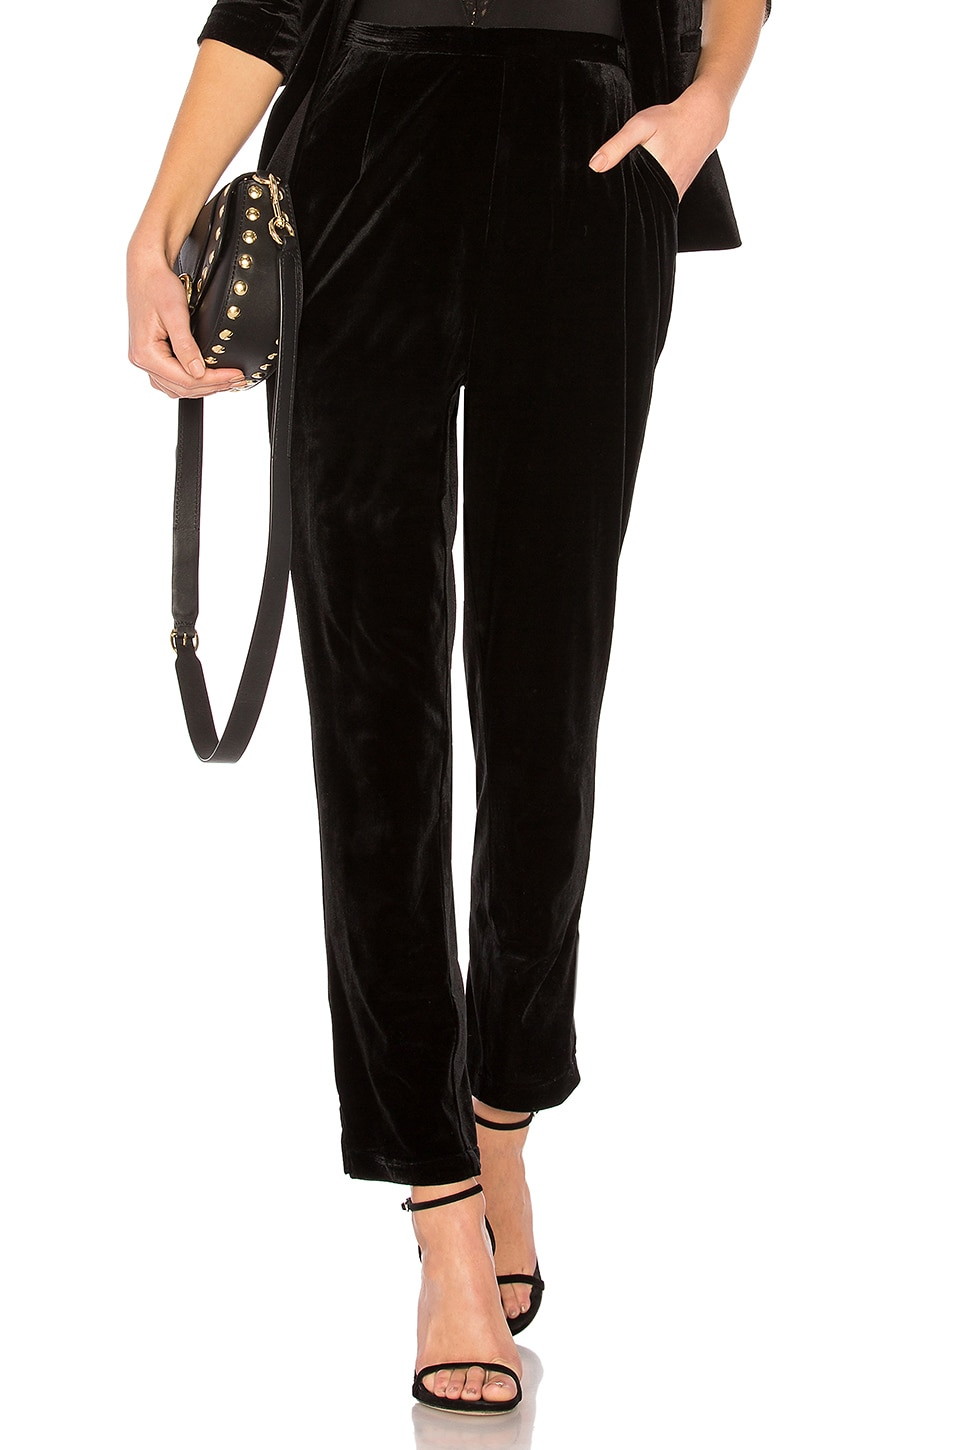 Yumi Kim City Slicker Pants in Black